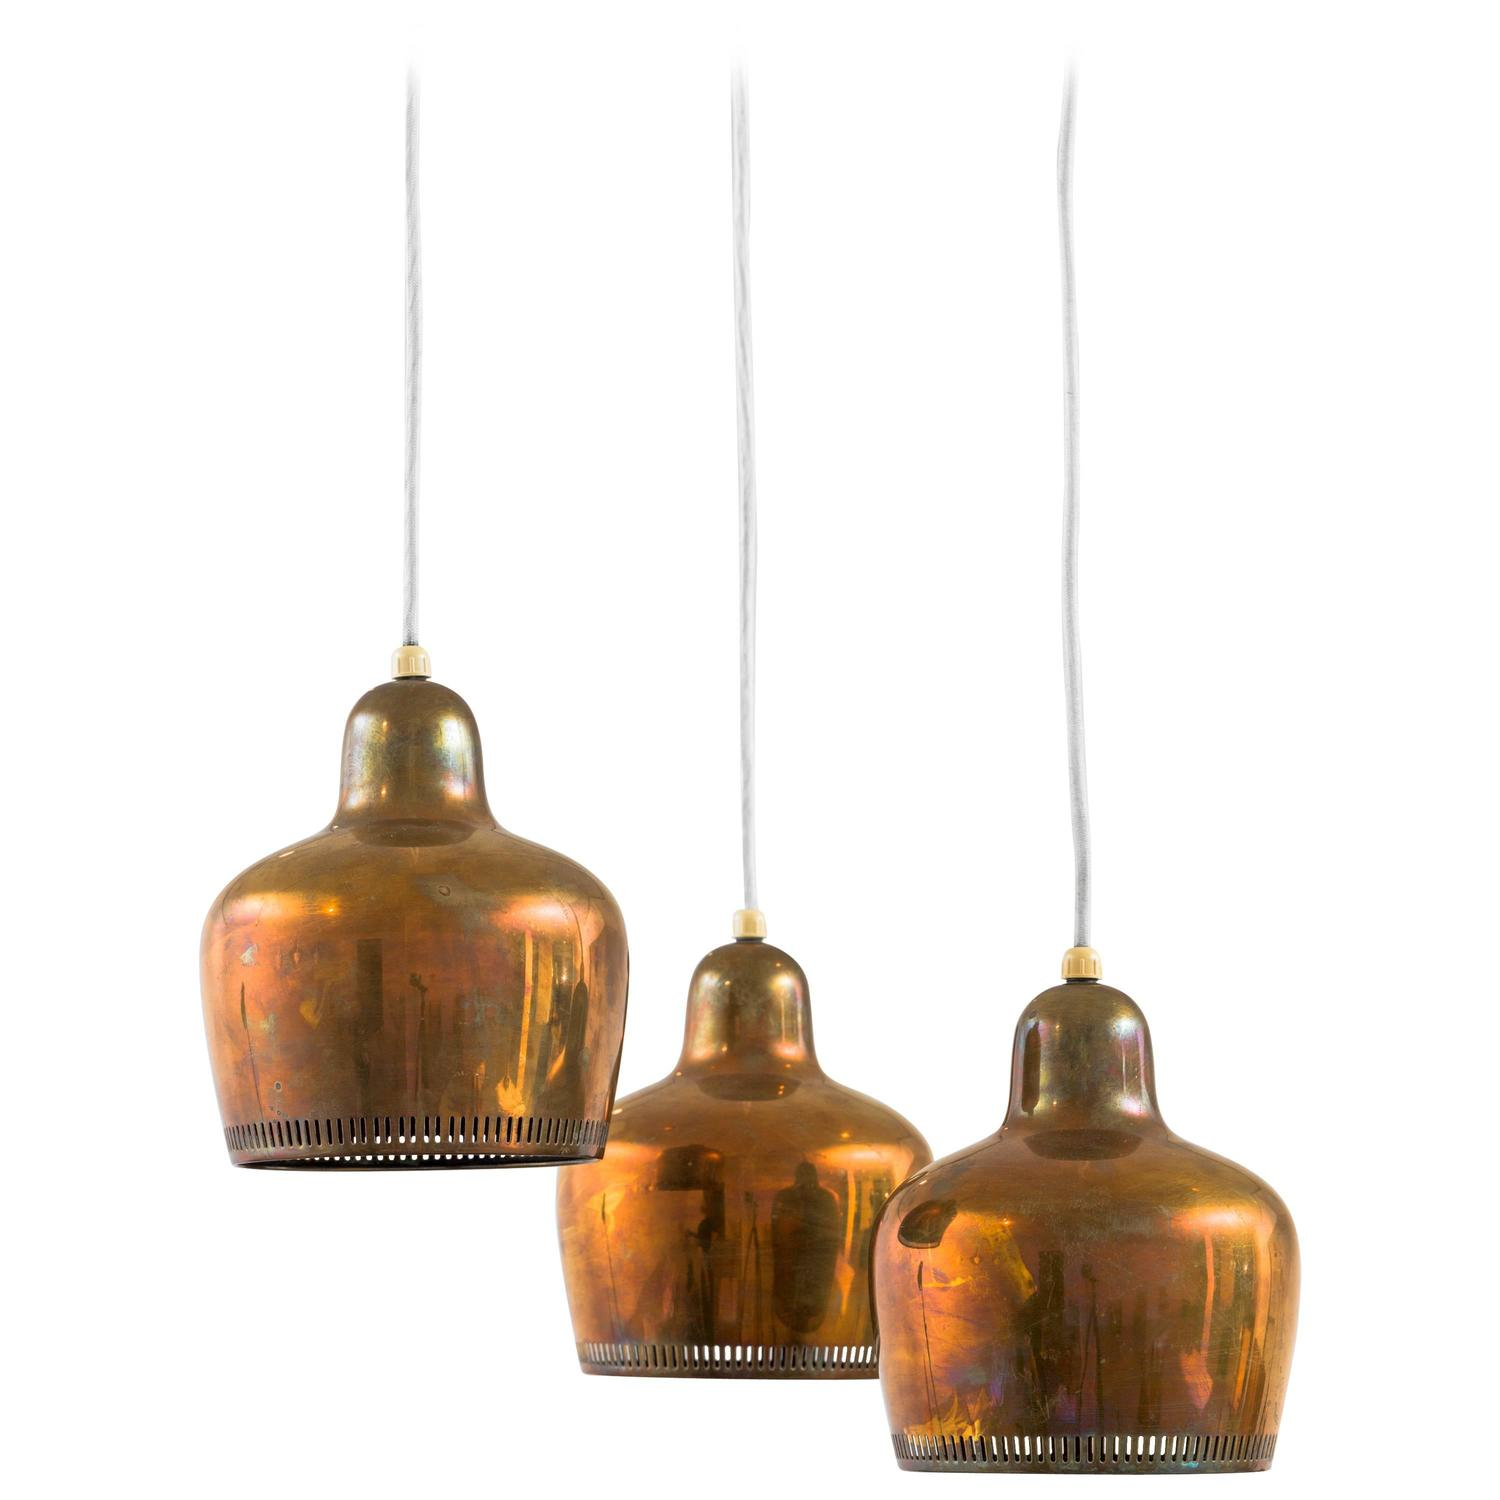 Three golden bell hanging lamps model a330 at 1stdibs for Chaise 66 alvar aalto